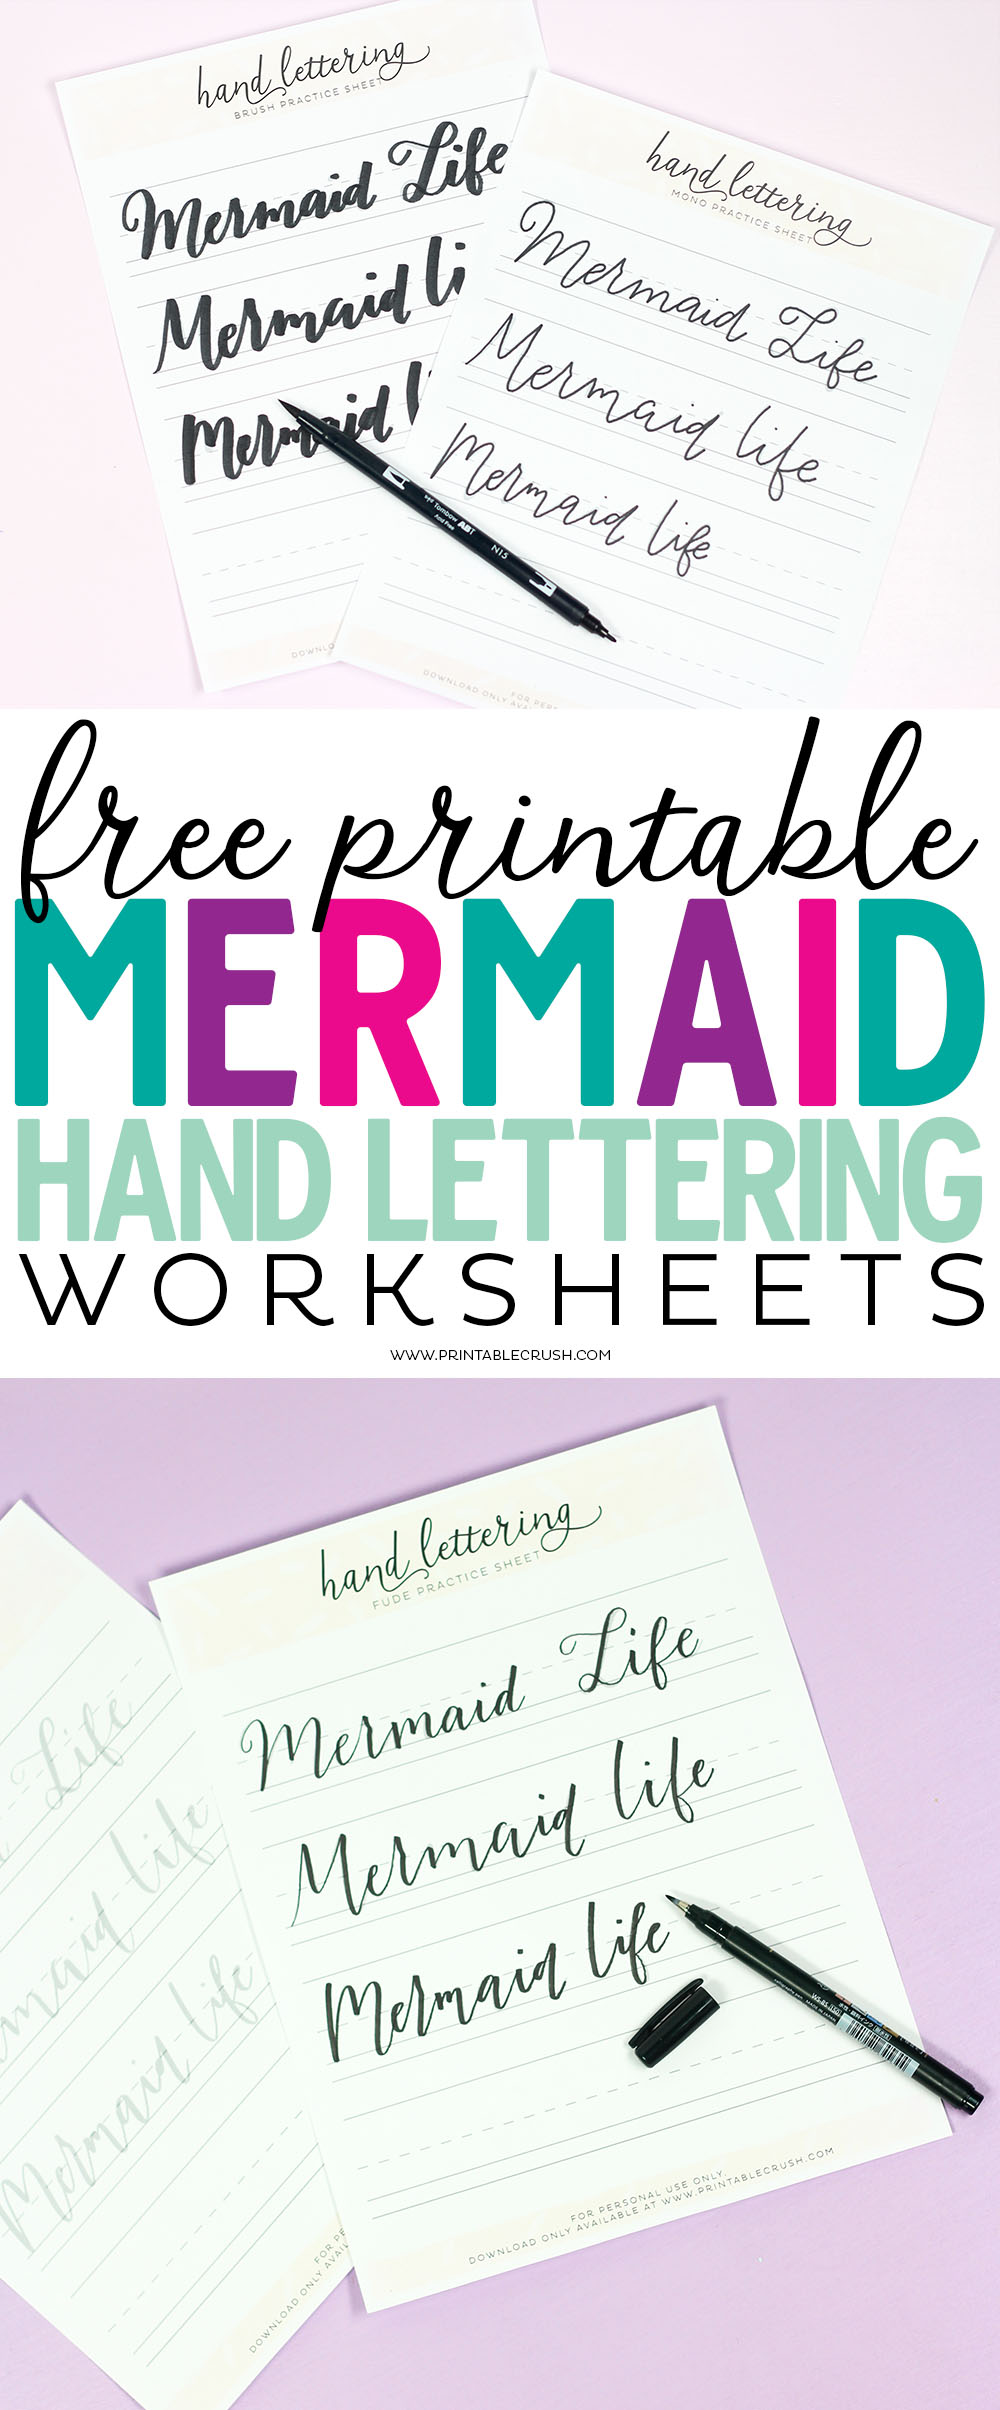 Free Printable Mermaid Hand Lettering Worksheets  Printable Crush